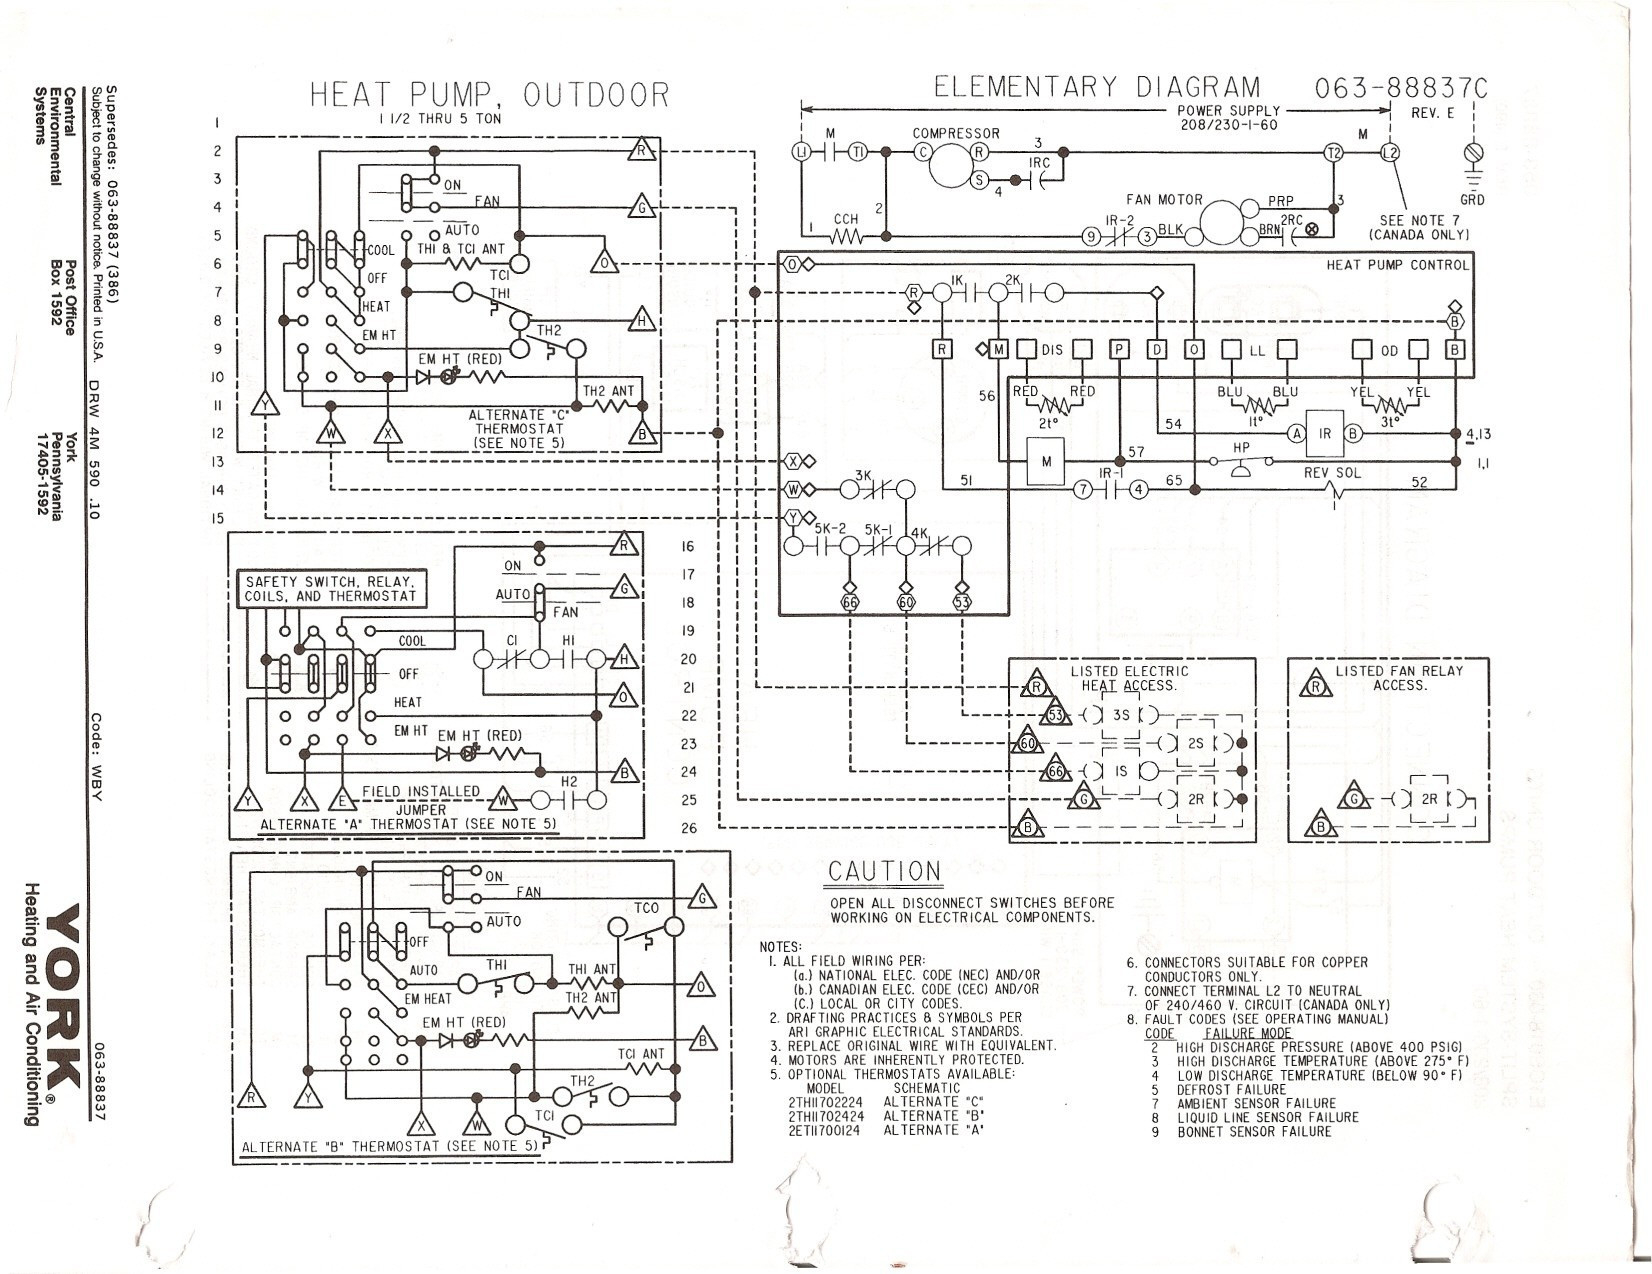 General Electric Air Compressor Wiring Diagram Electrical Conditioner Heat Strip Radio Capacitor